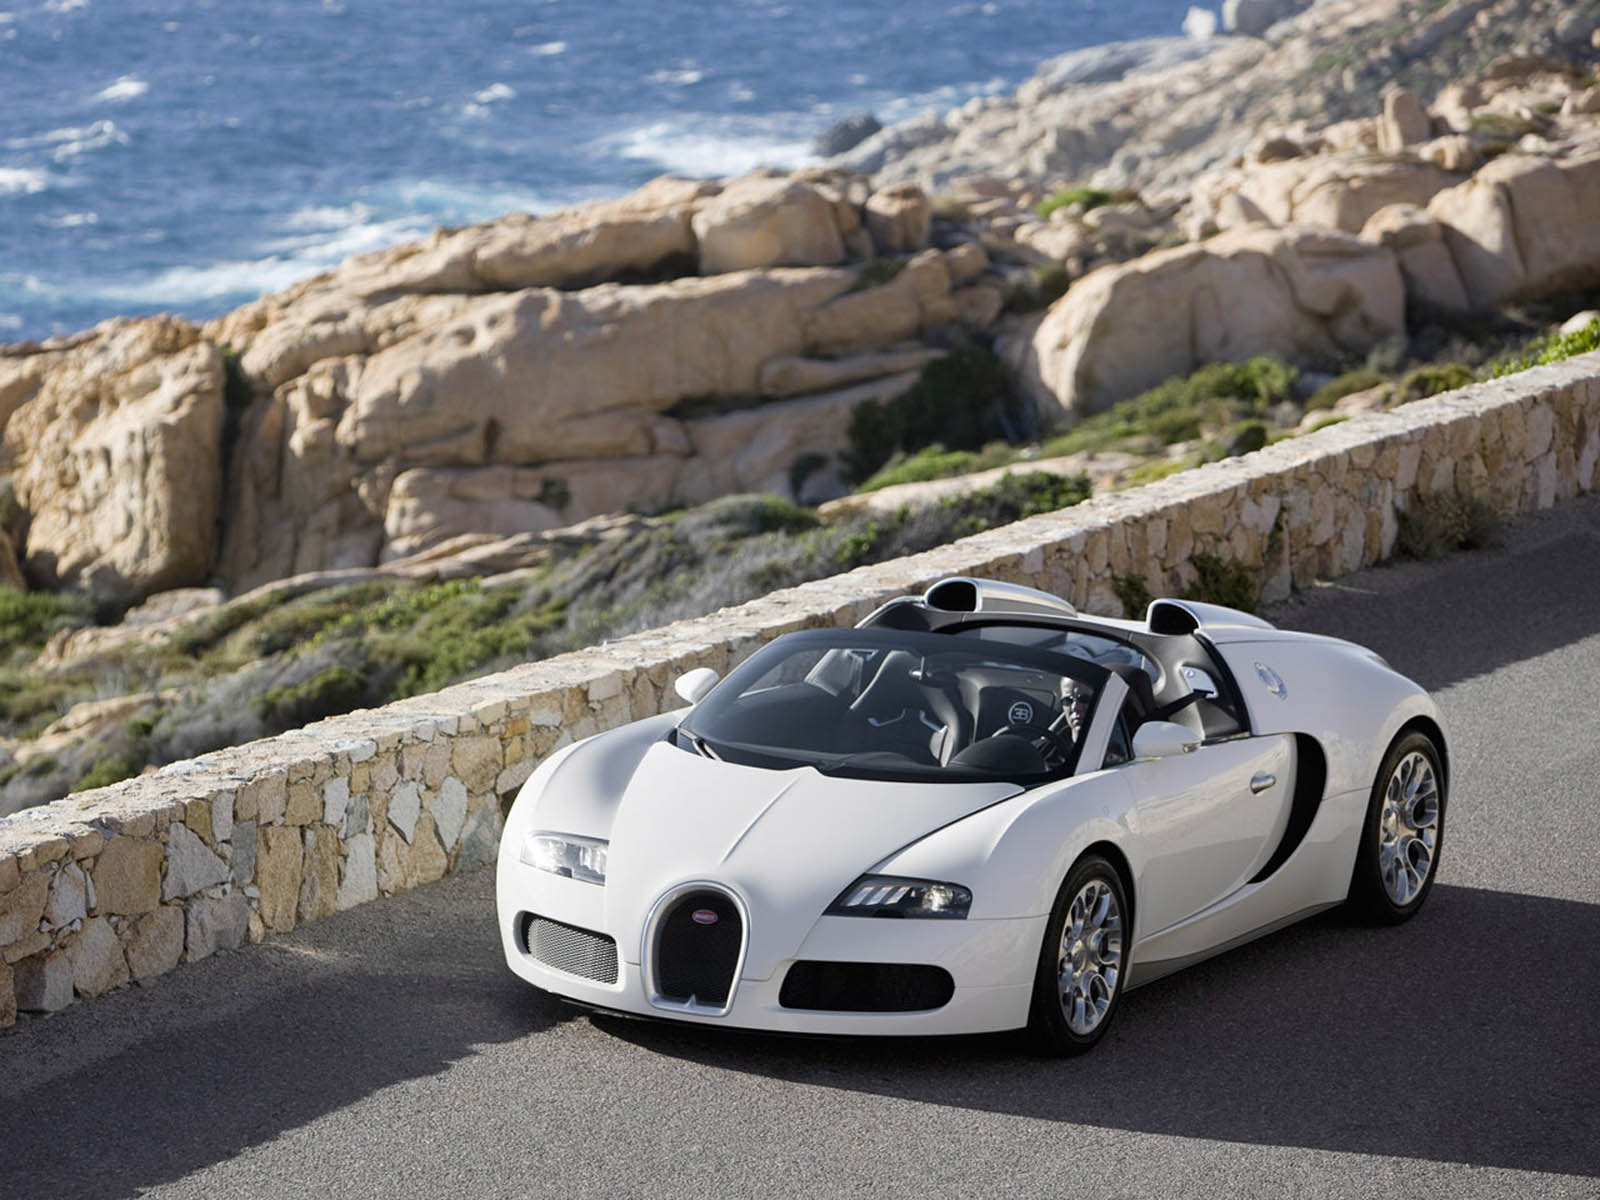 wallpapers bugatti veyron car desktop backgrounds bugatti veyron 1600x1200